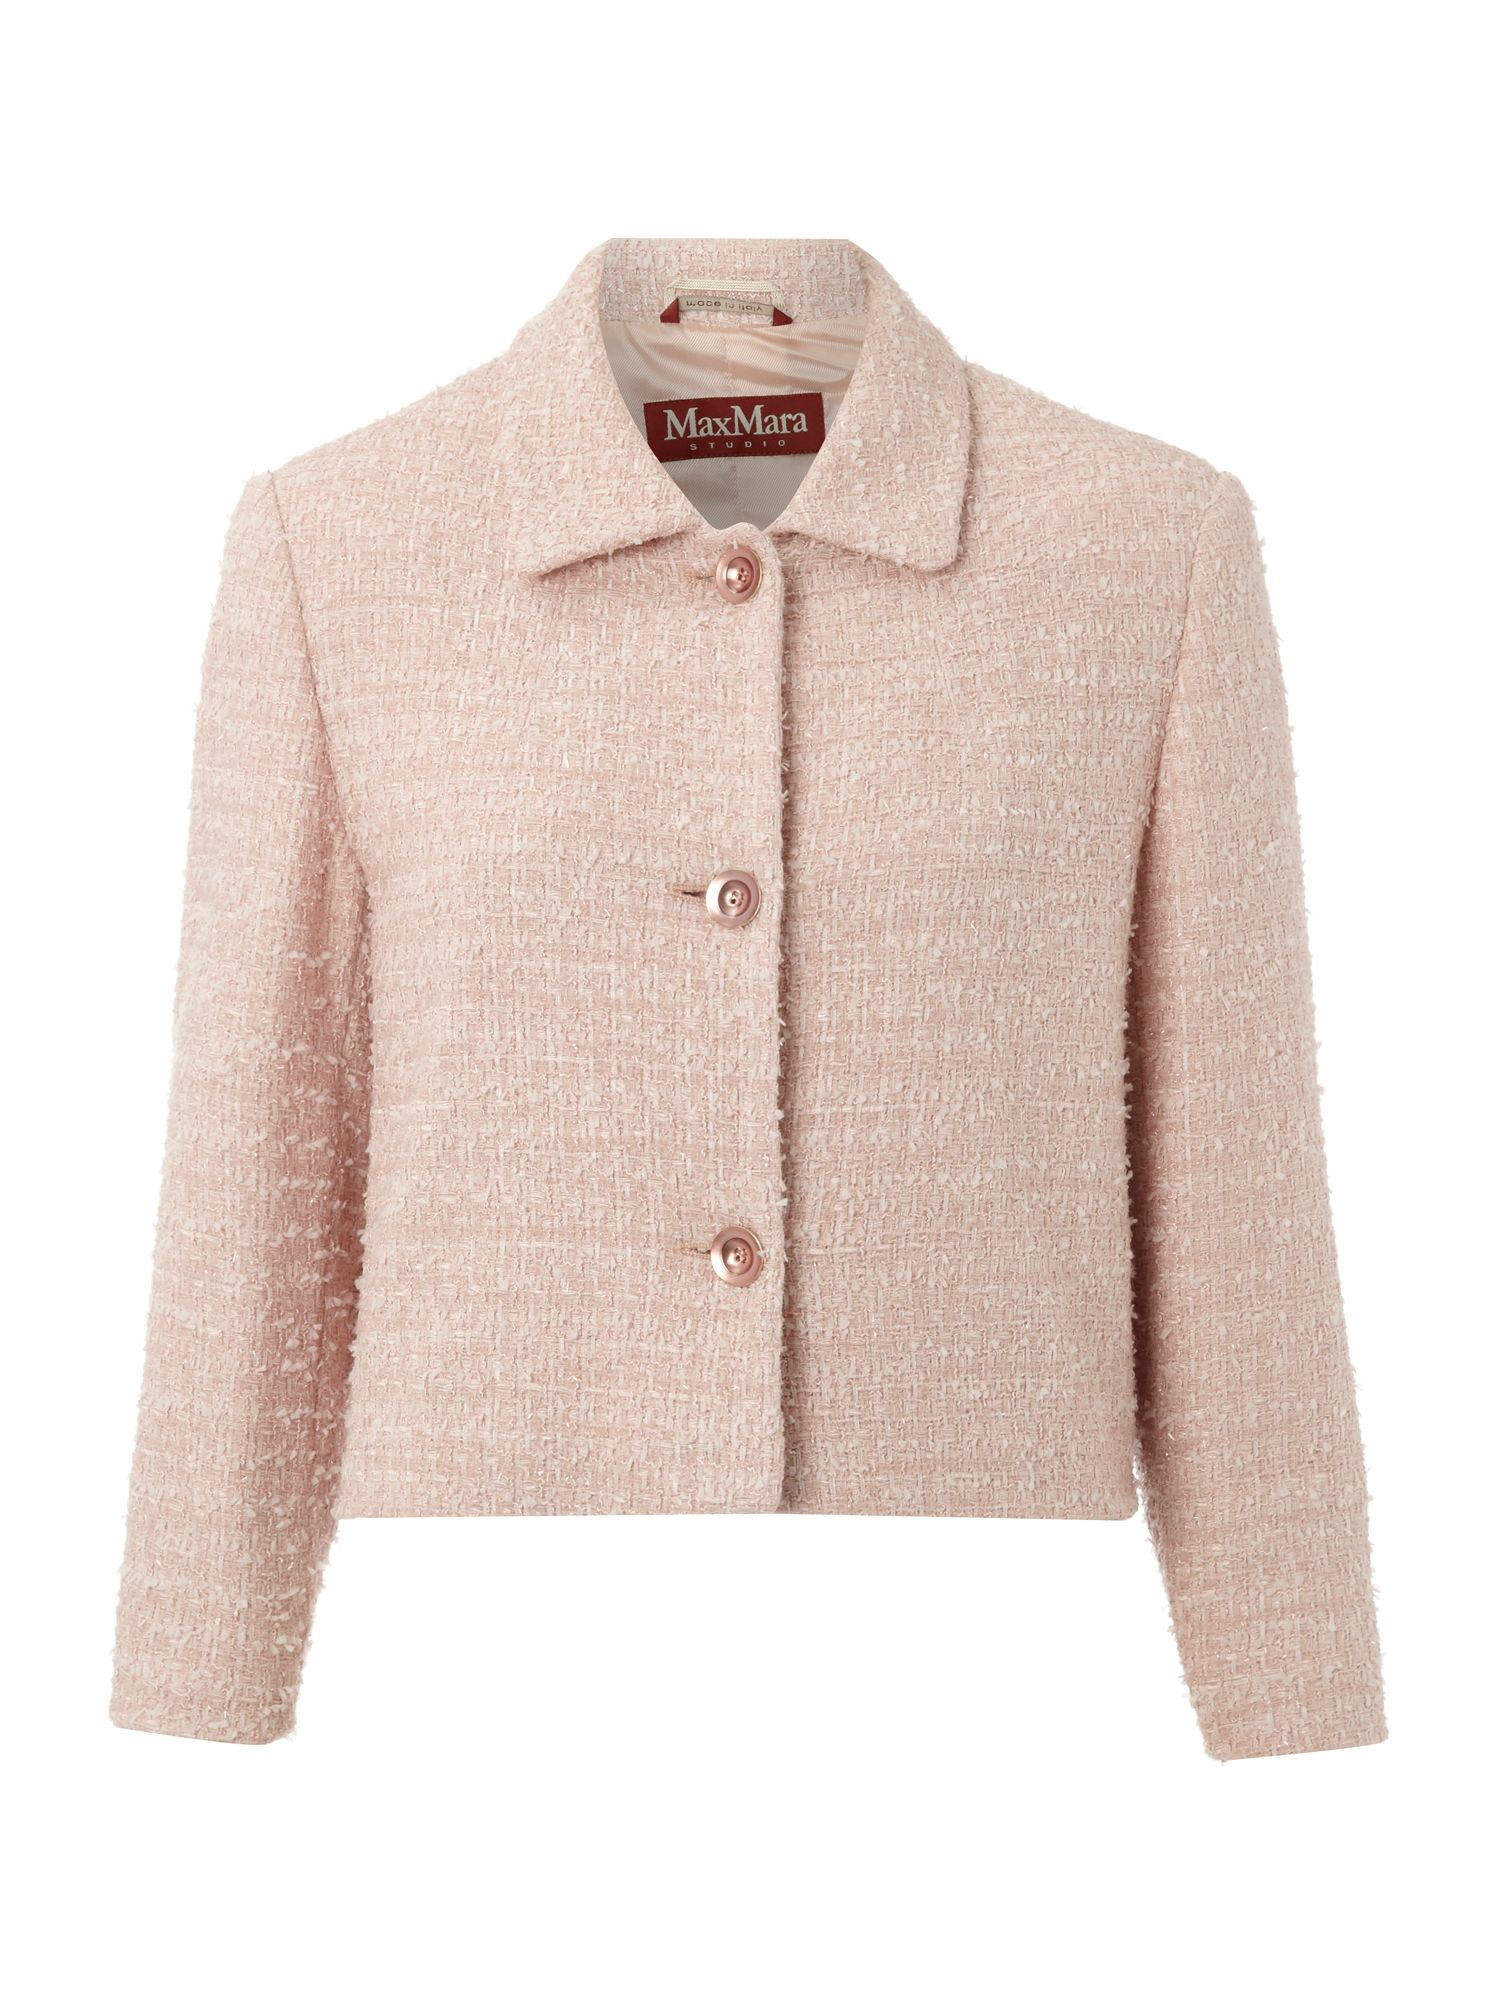 Max mara studio Feltro Boucle Jacket in Pink | Lyst